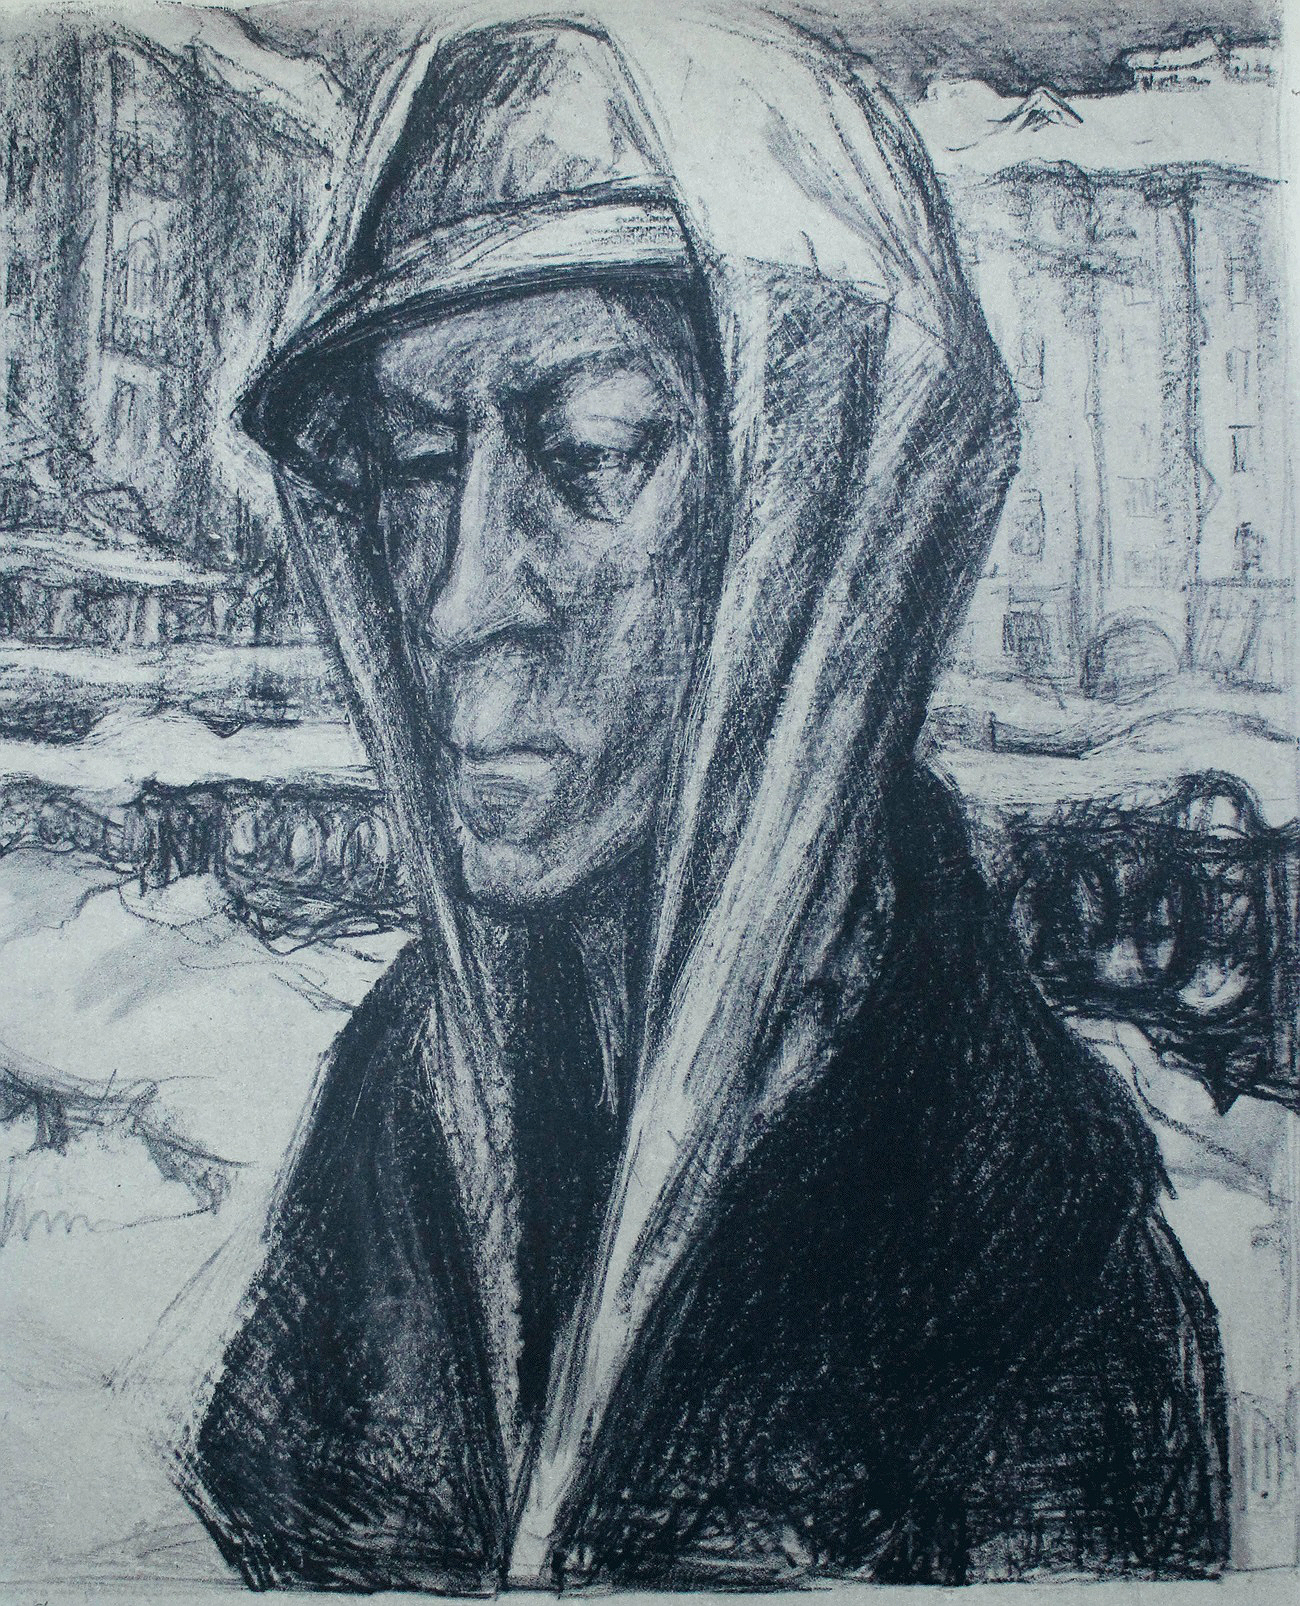 """Elena's vision of the Siege of Leningrad conflicted with the heroic narrative promoted by the authorities, and after the war she was ordered to destroy her work,'' said the exhibition curator, Ksenia Afonina. ""However, she was determined to preserve it as a testimony for future generations. She transformed her sketches into full-fledged images using lithography and engraving on cardboard, vividly recreating the blurred sight that afflicted Leningrad's malnourished inhabitants through her unique printmaking techniques. Marttila's art allows us to see the siege of Leningrad literally through the eyes of those who endured it."